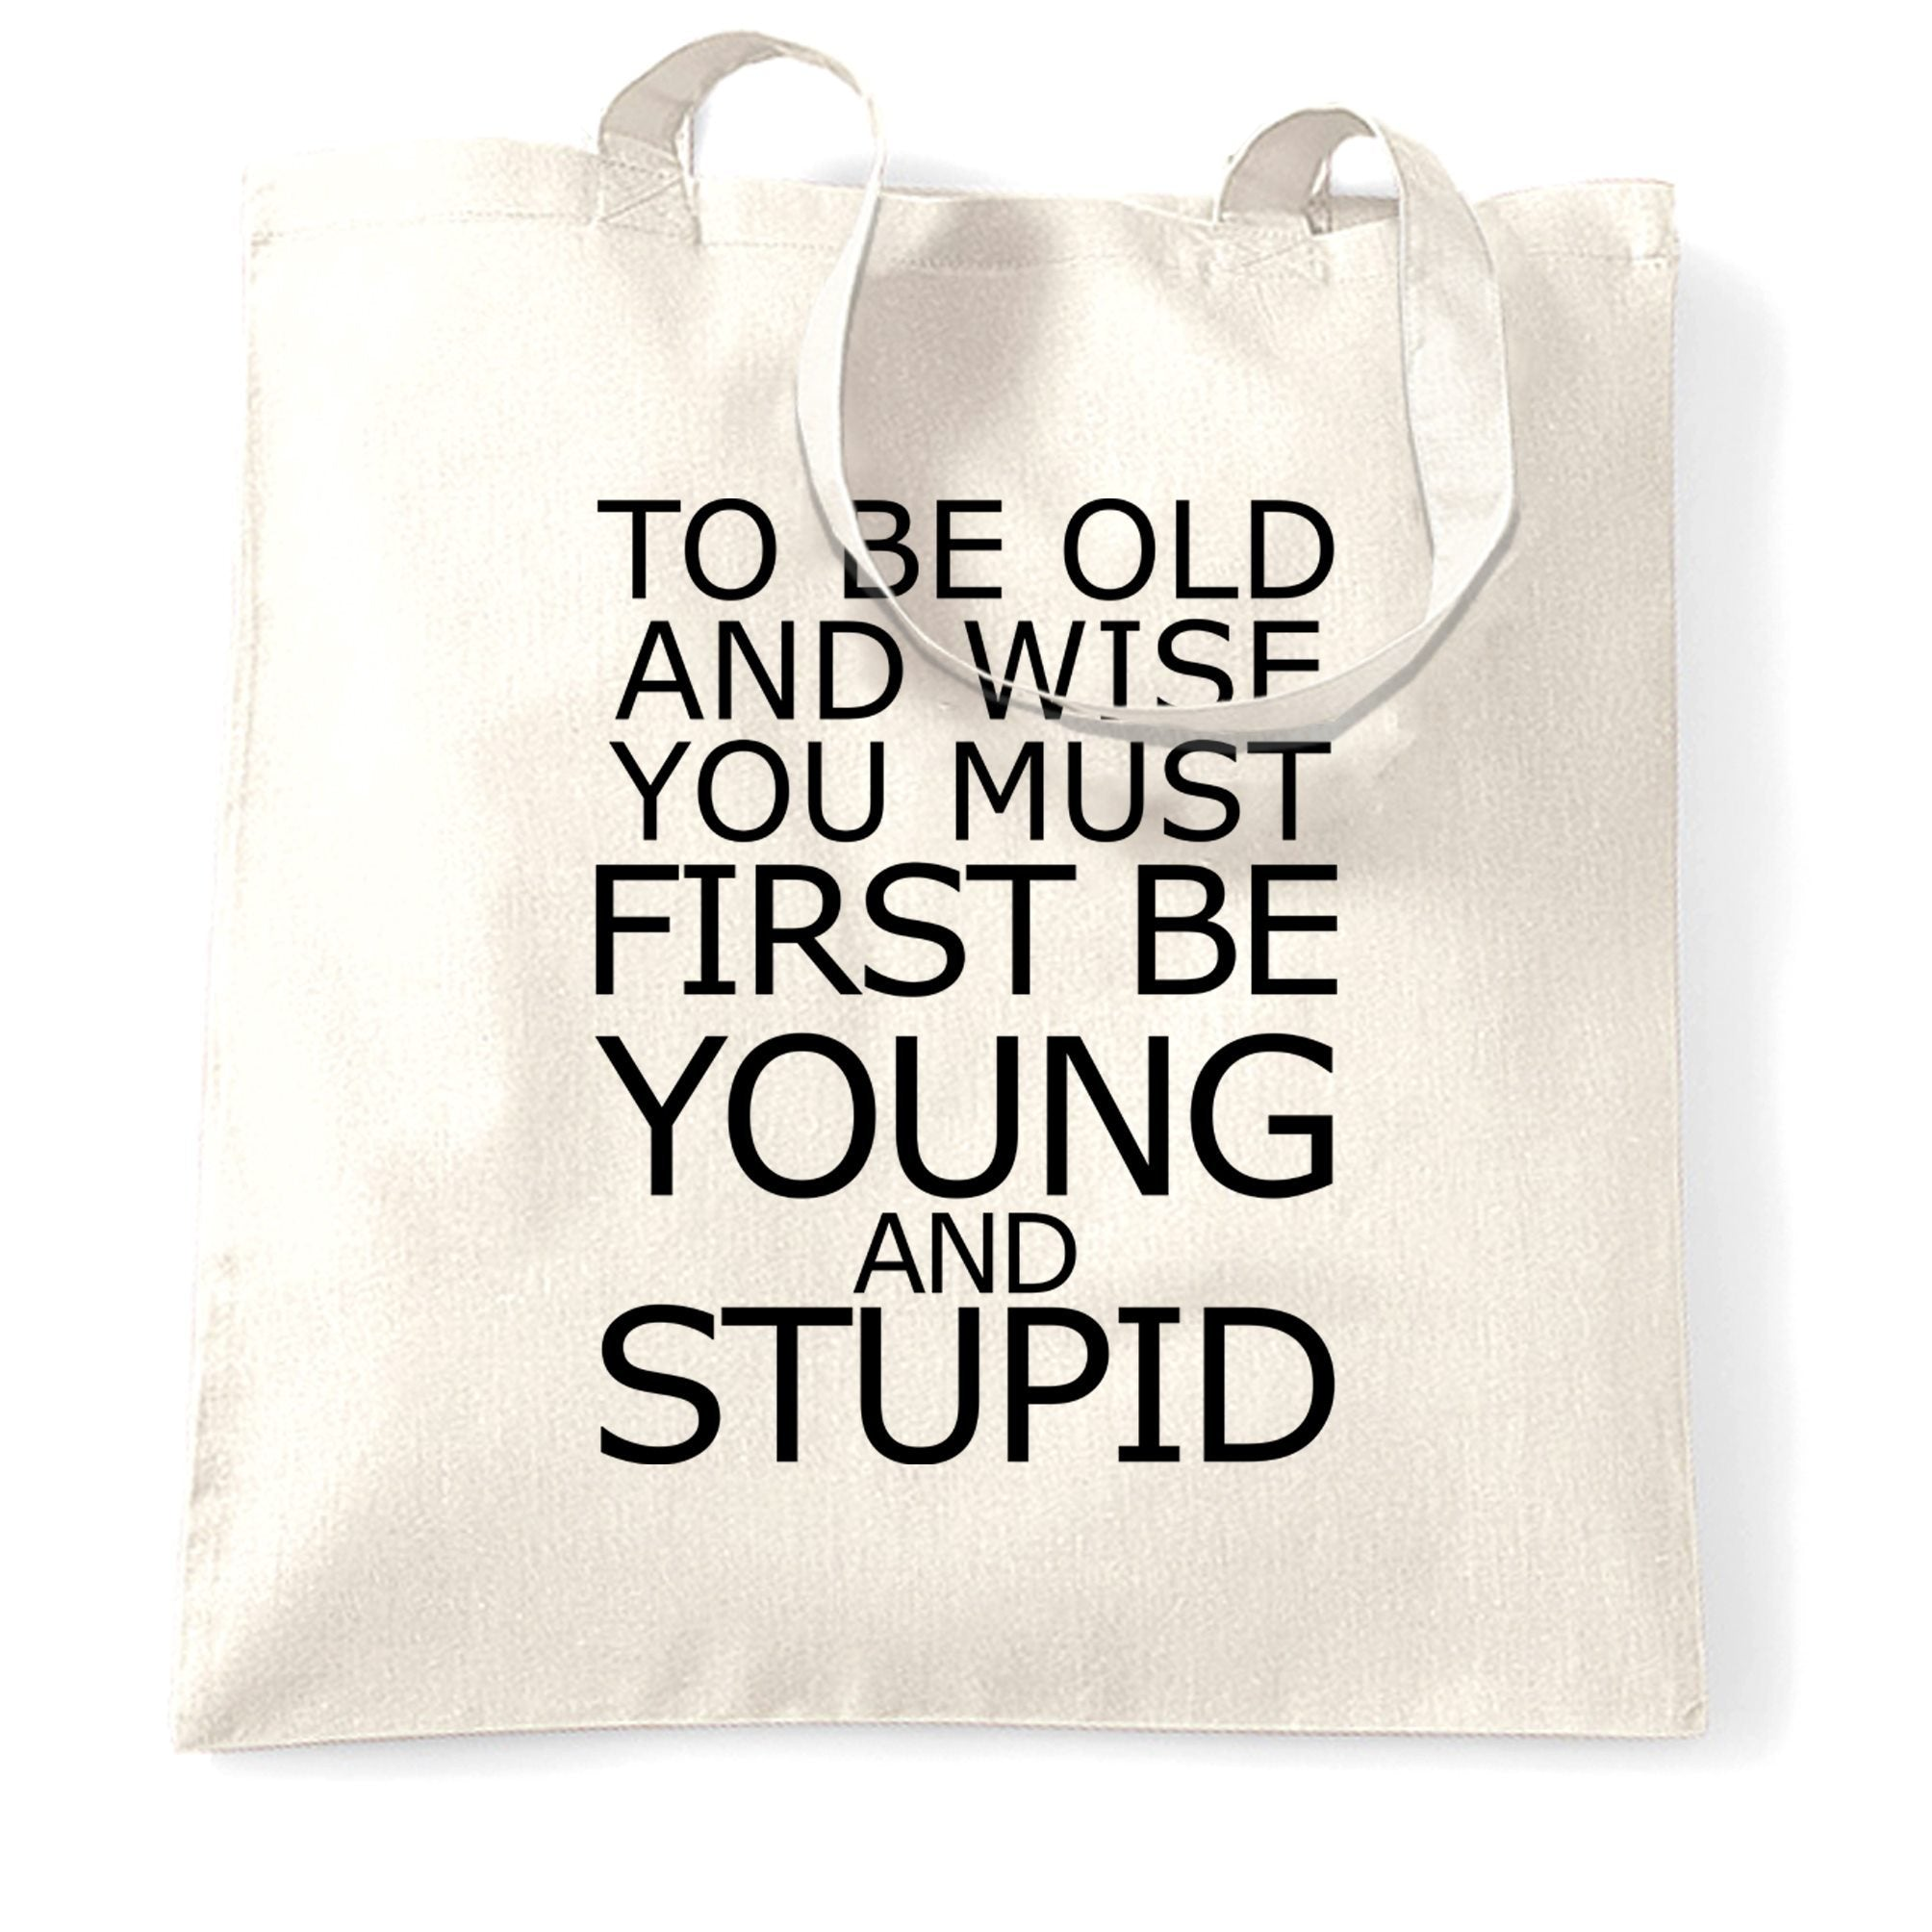 Joke Slogan Tote Bag To Be Old And Wise